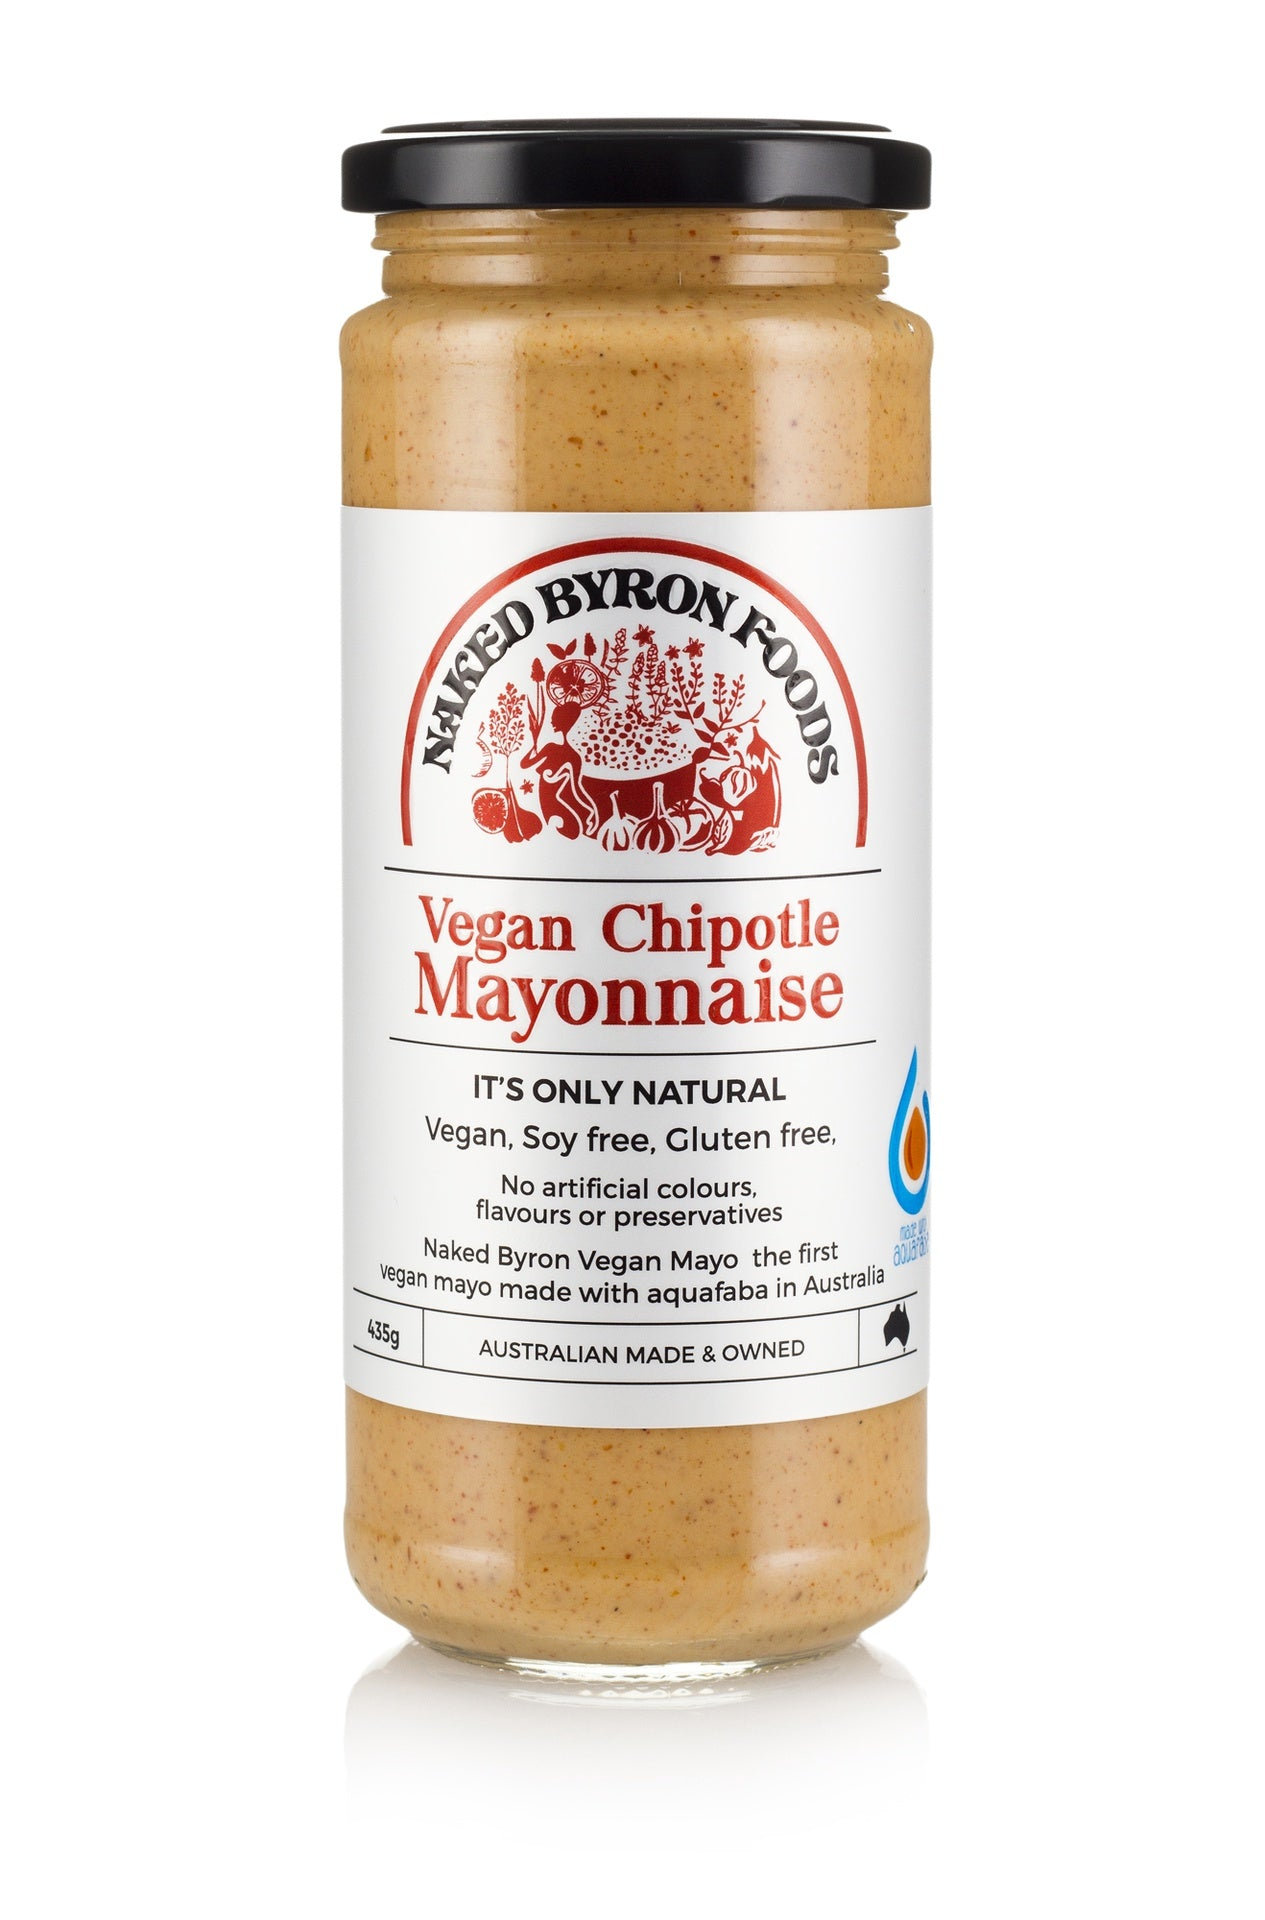 Naked Byron Foods Vegan Chipotle Mayonnaise 435g Cold Vegan Grocery Store